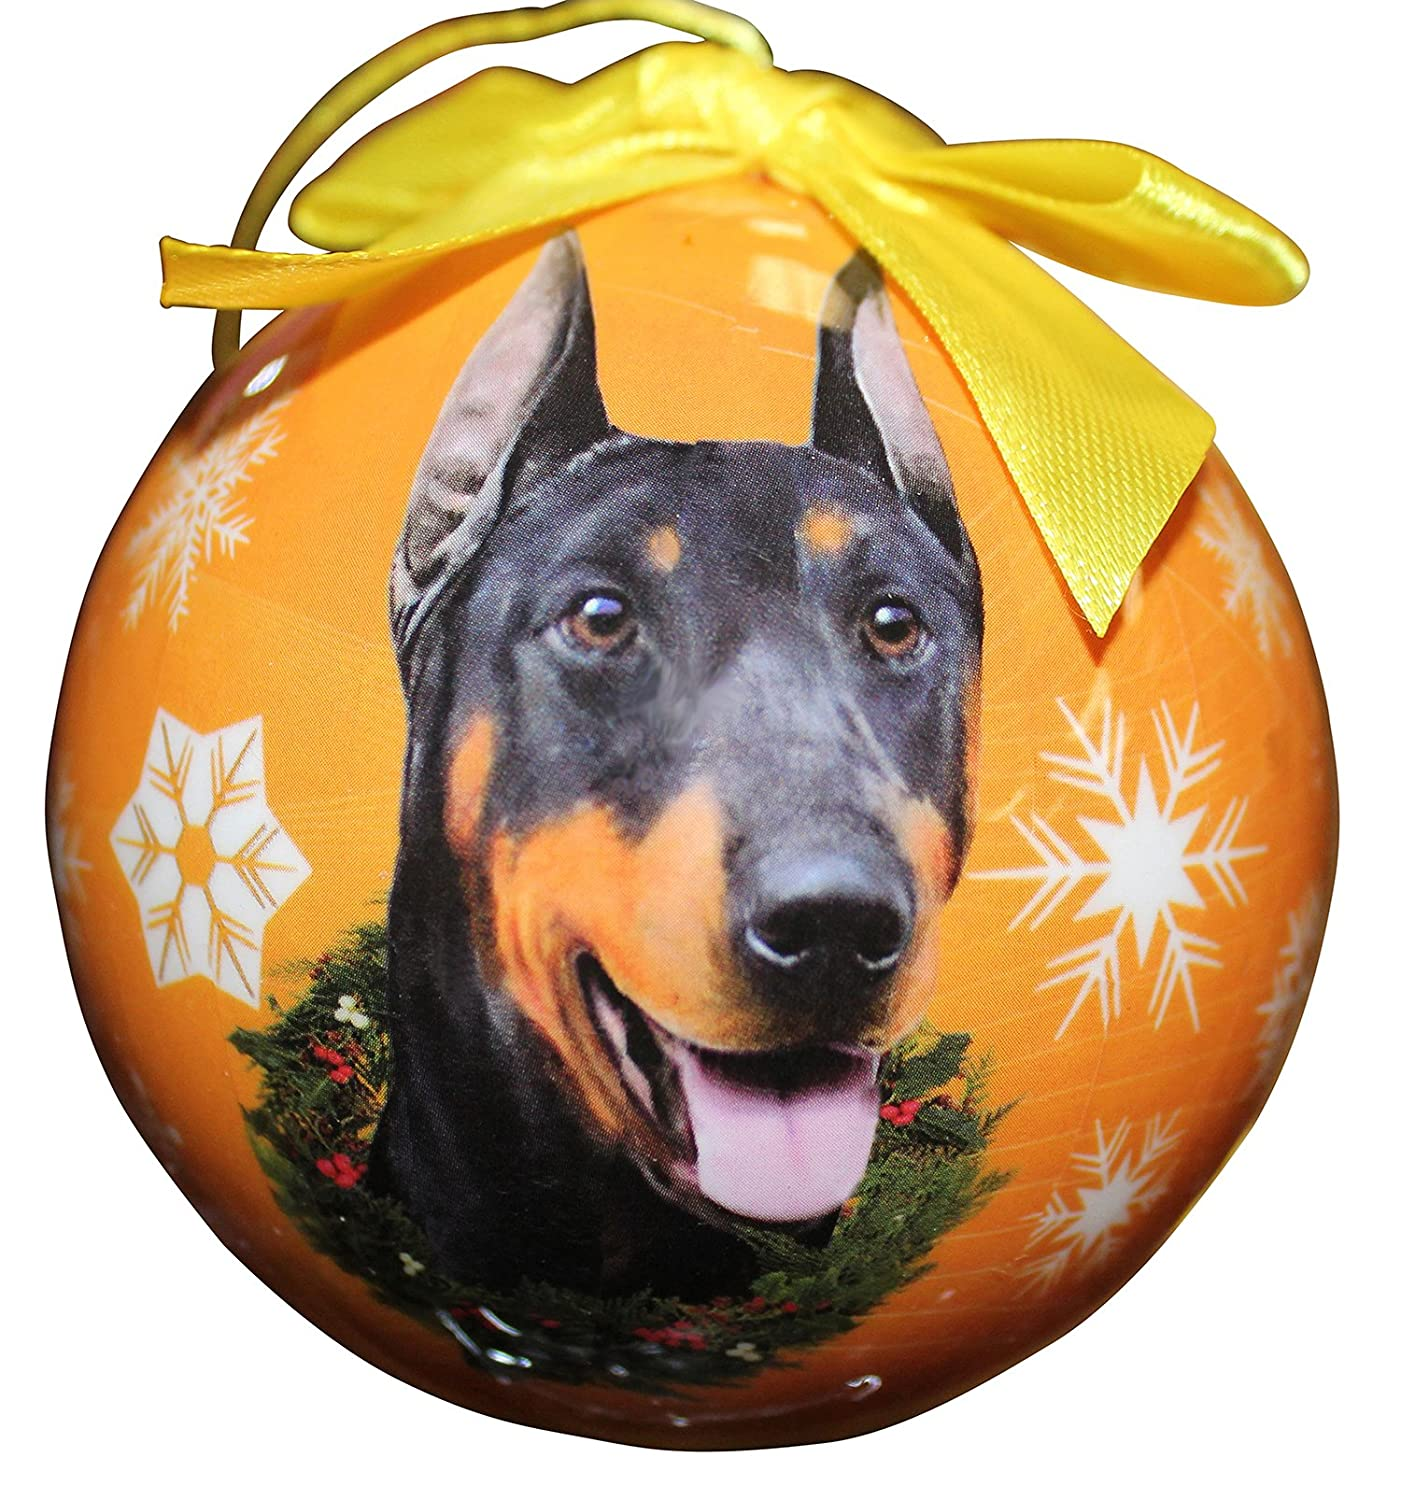 Doberman Christmas Ornament Shatter Proof Ball Easy To Personalize A Perfect Gift For Doberman Lovers E&S Pets